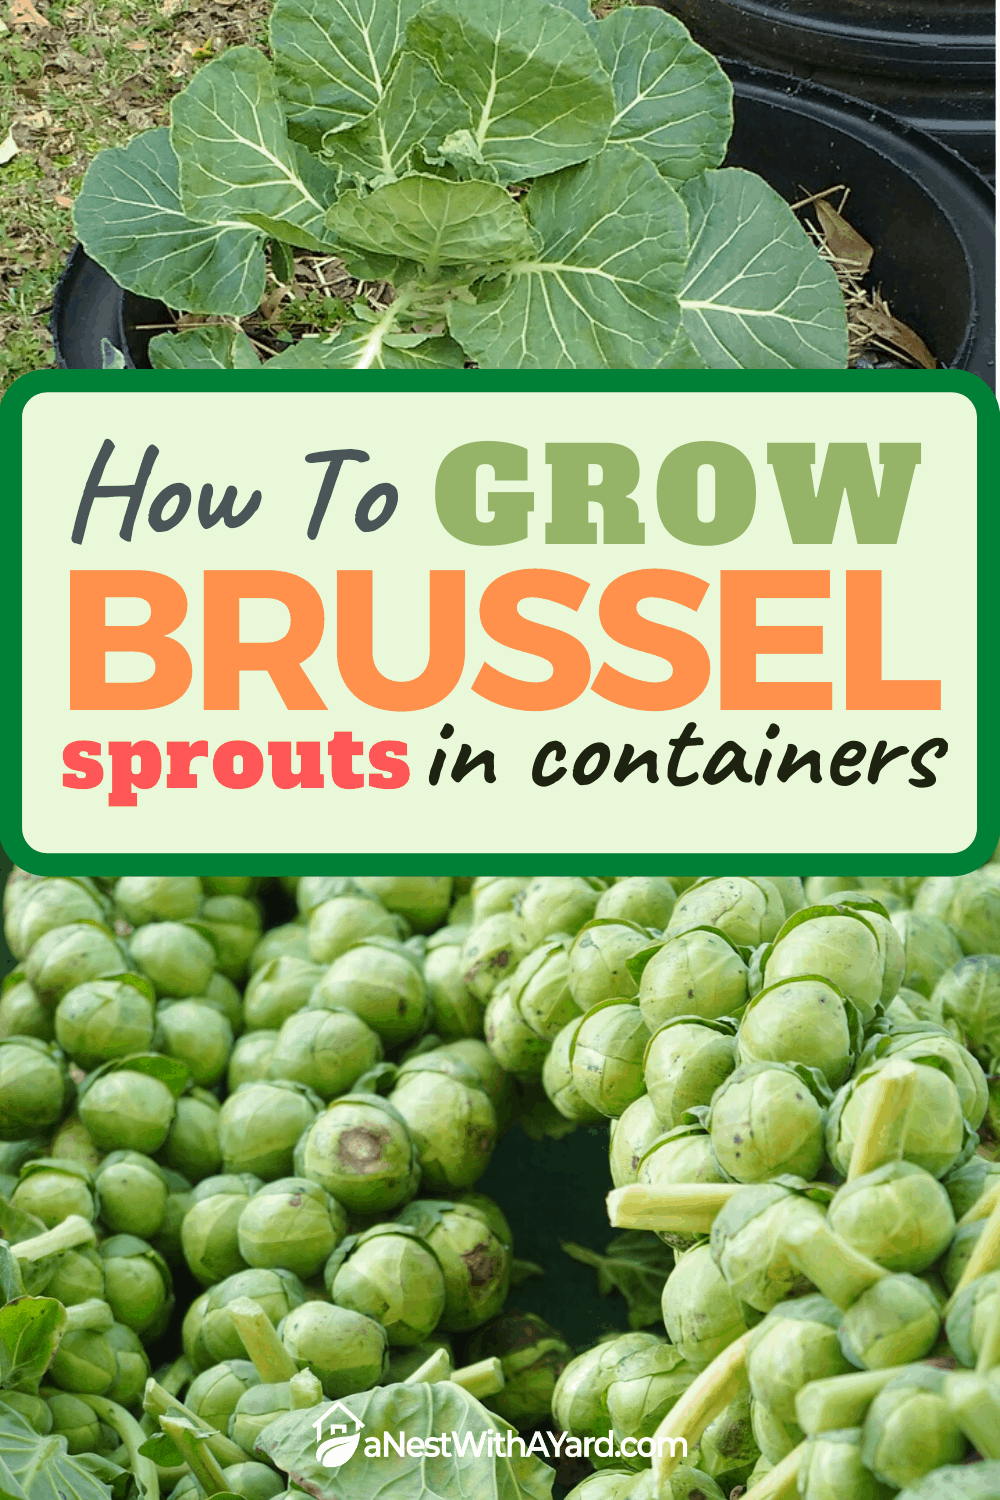 How to Grow Brussel Sprouts in Containers